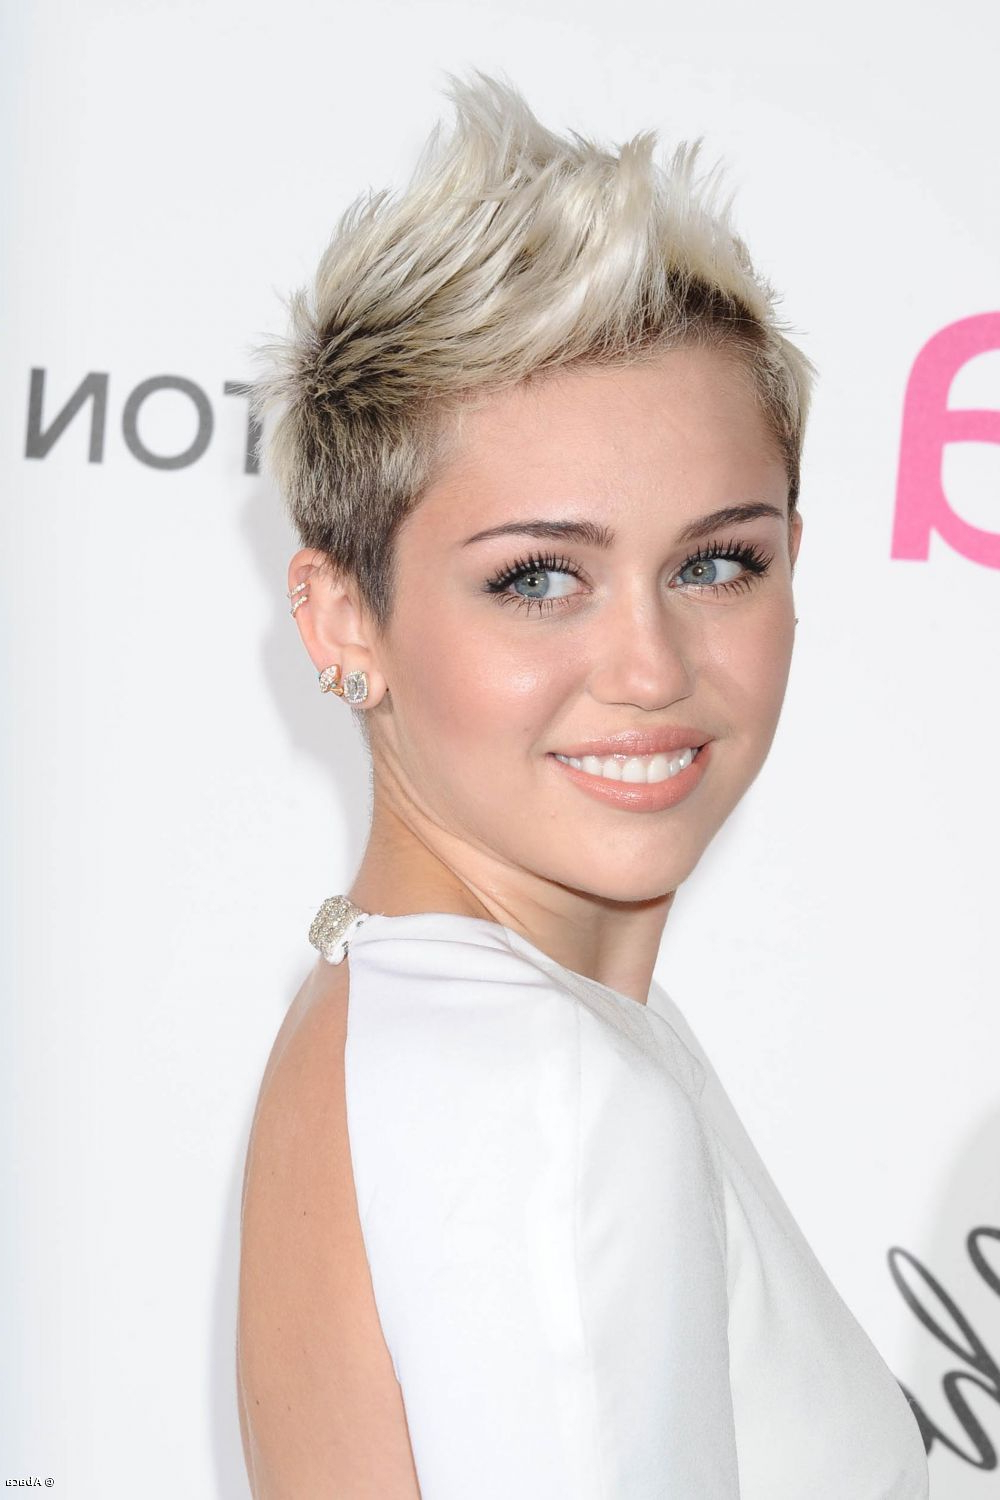 Would You Get A Short Mohawk Hairstyle Like Miley Cyrus? With Short Haircuts Like Miley Cyrus (View 22 of 25)